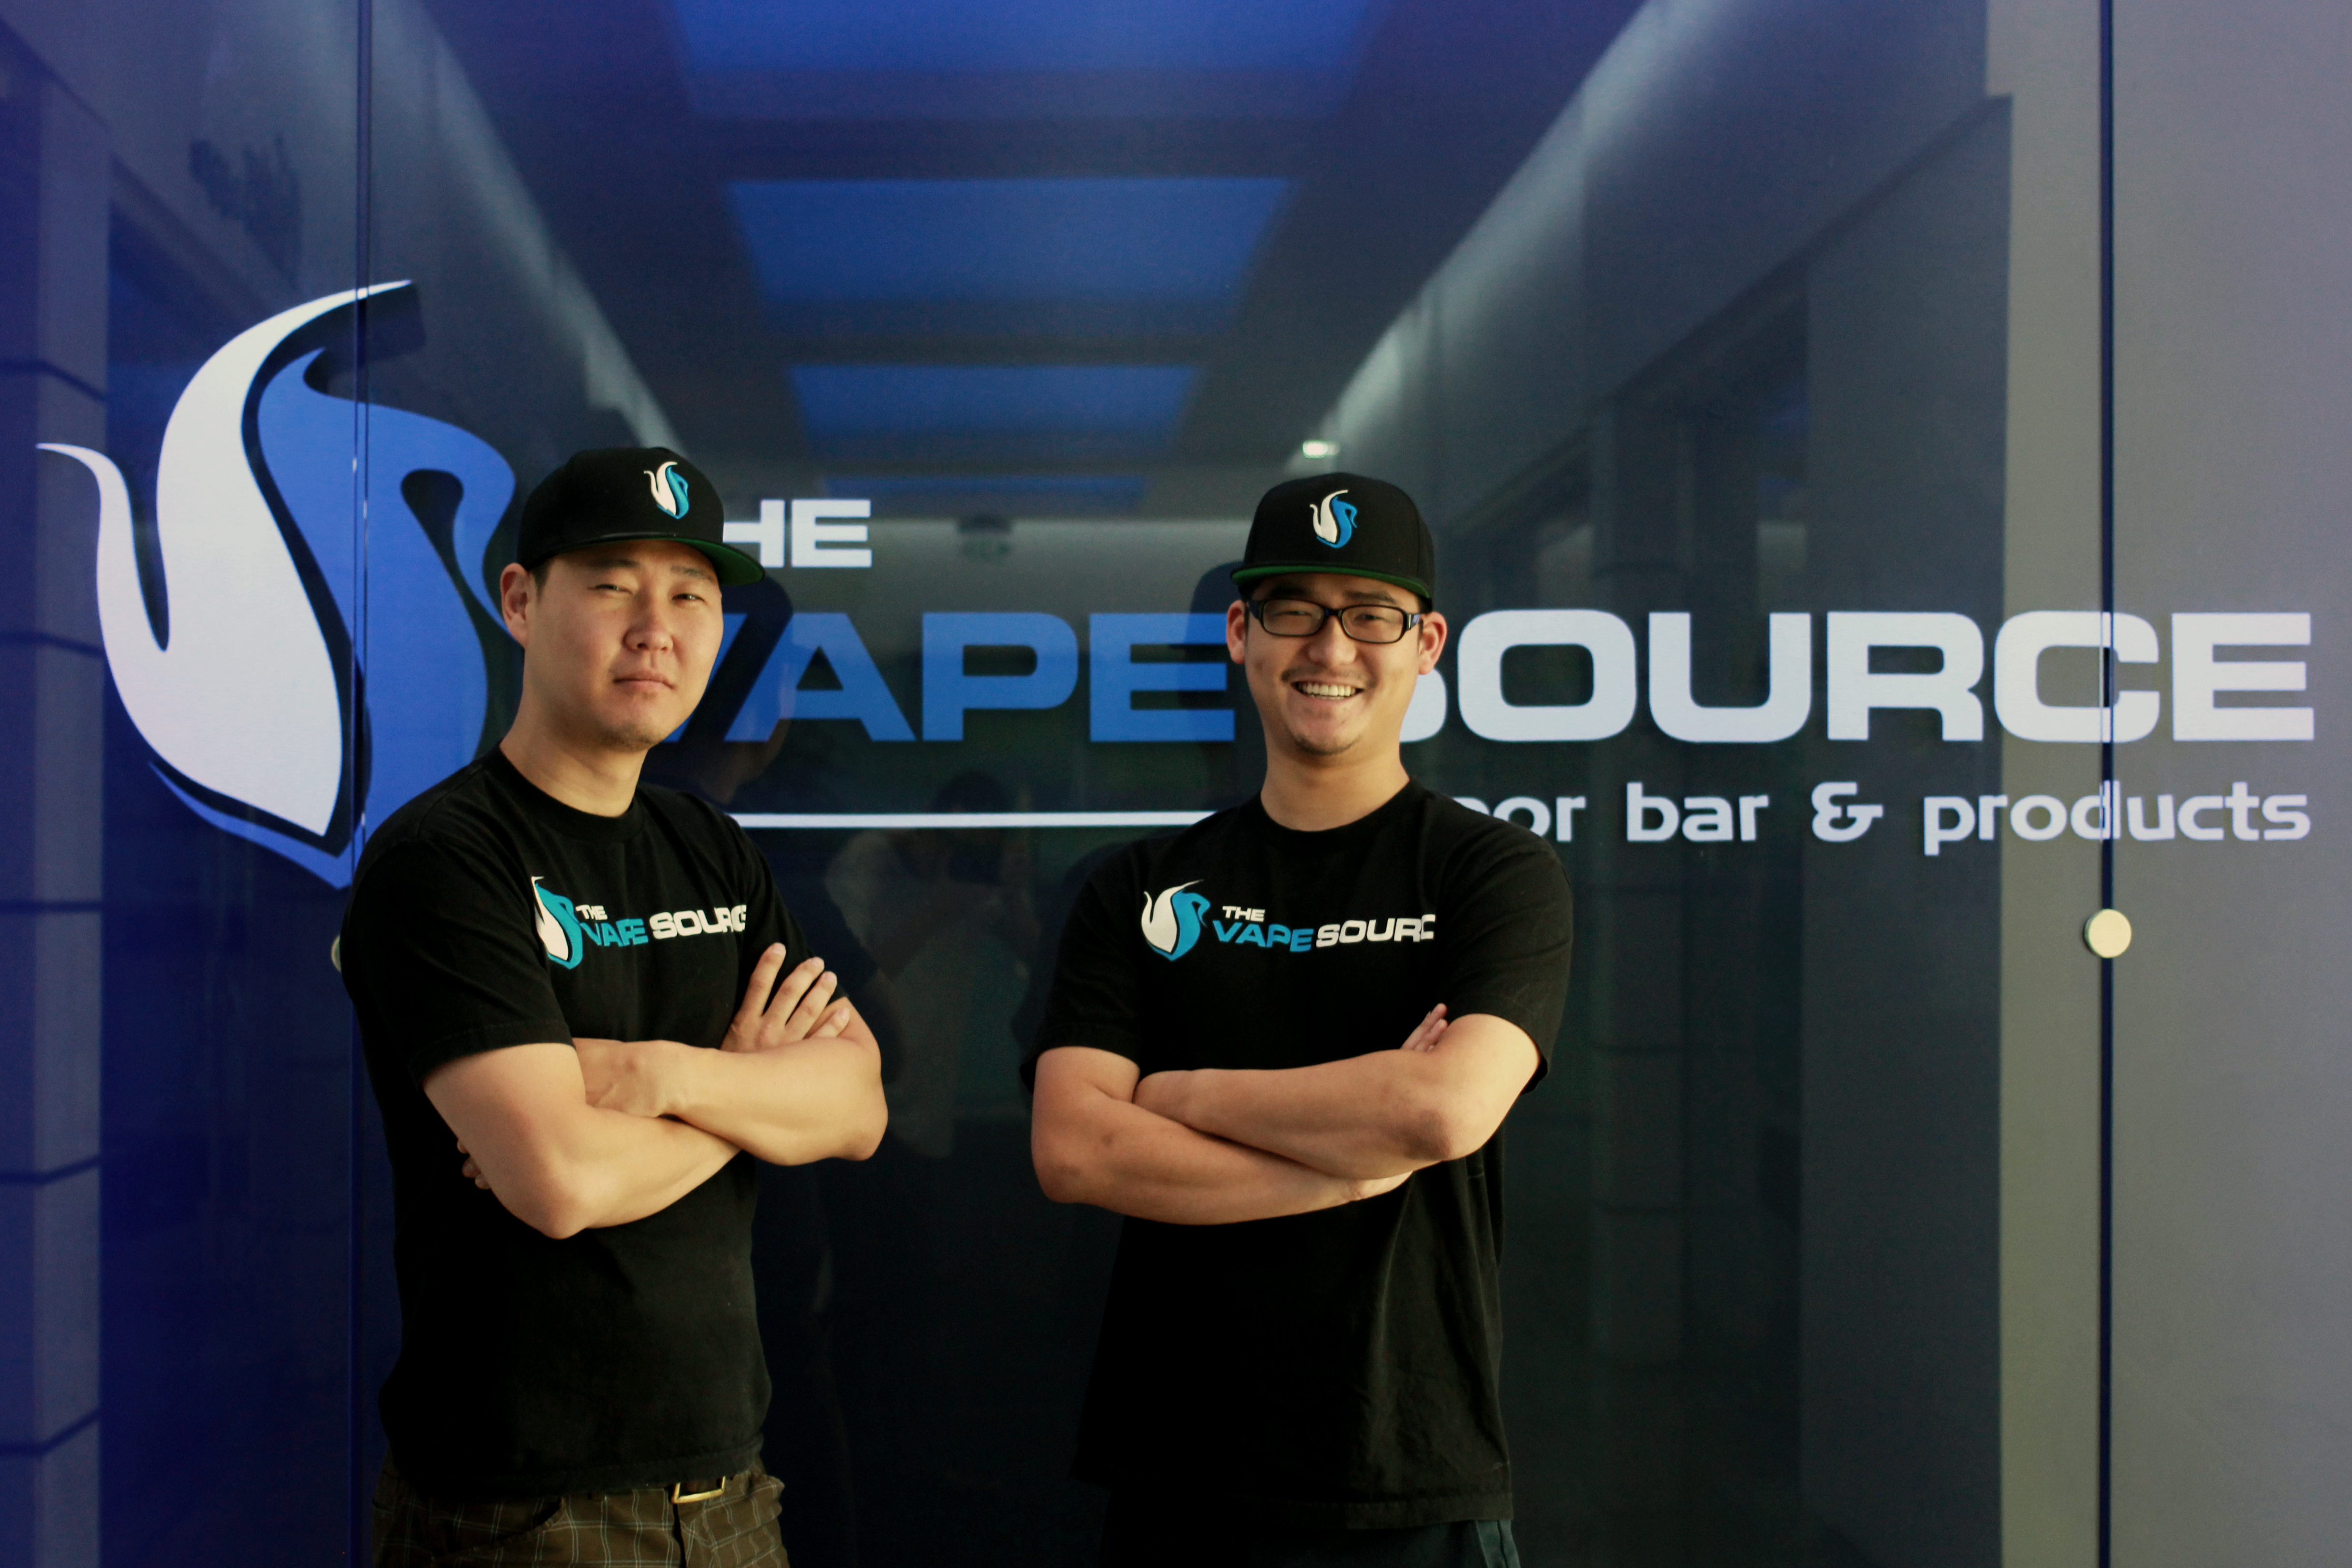 Tricky business: Brothers find success in K-town with vape shops